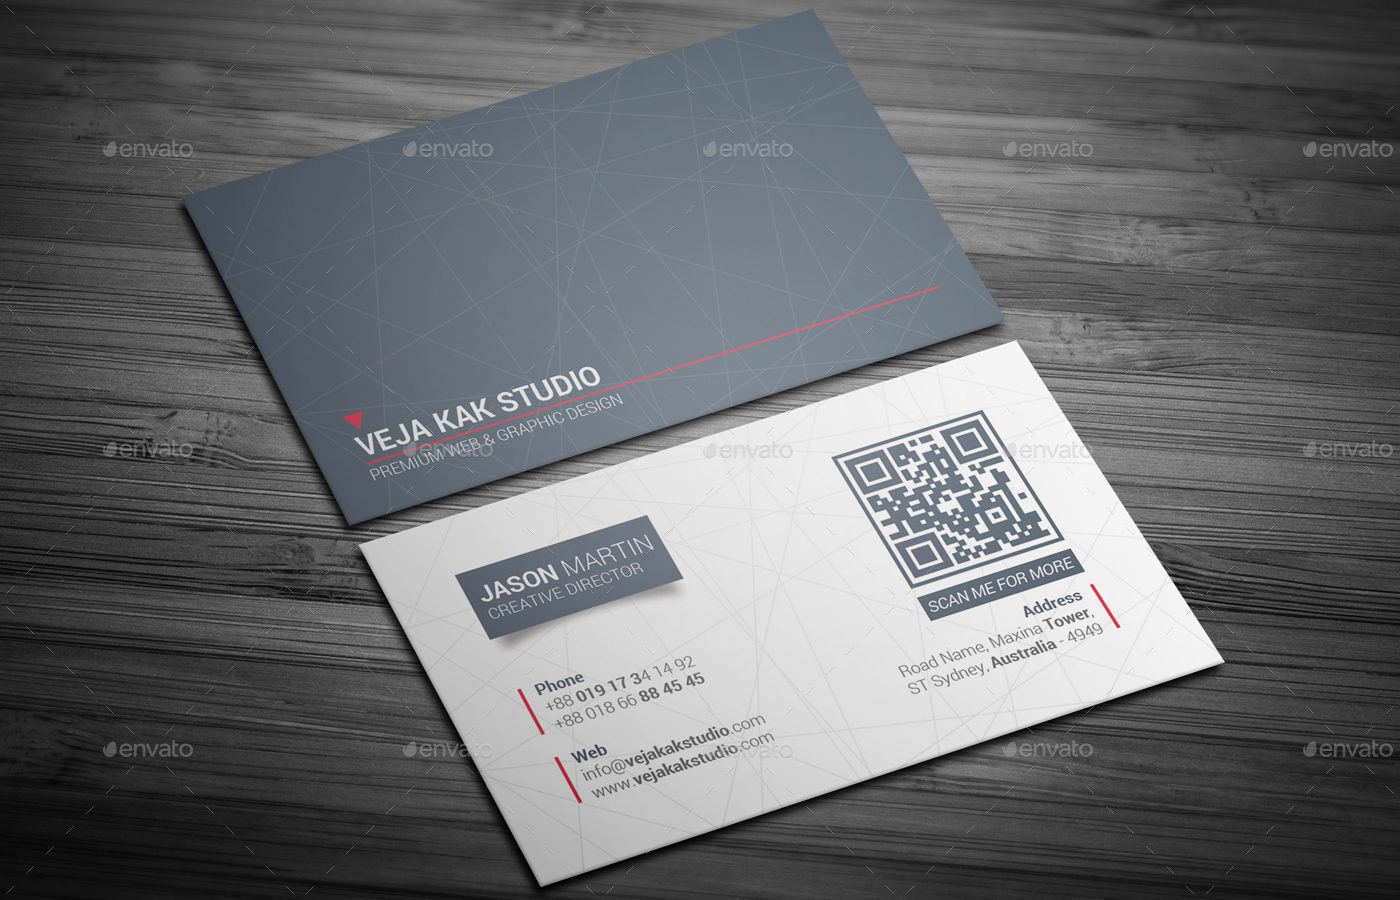 Sleek Minimal Business Card by vejakakstudio | GraphicRiver